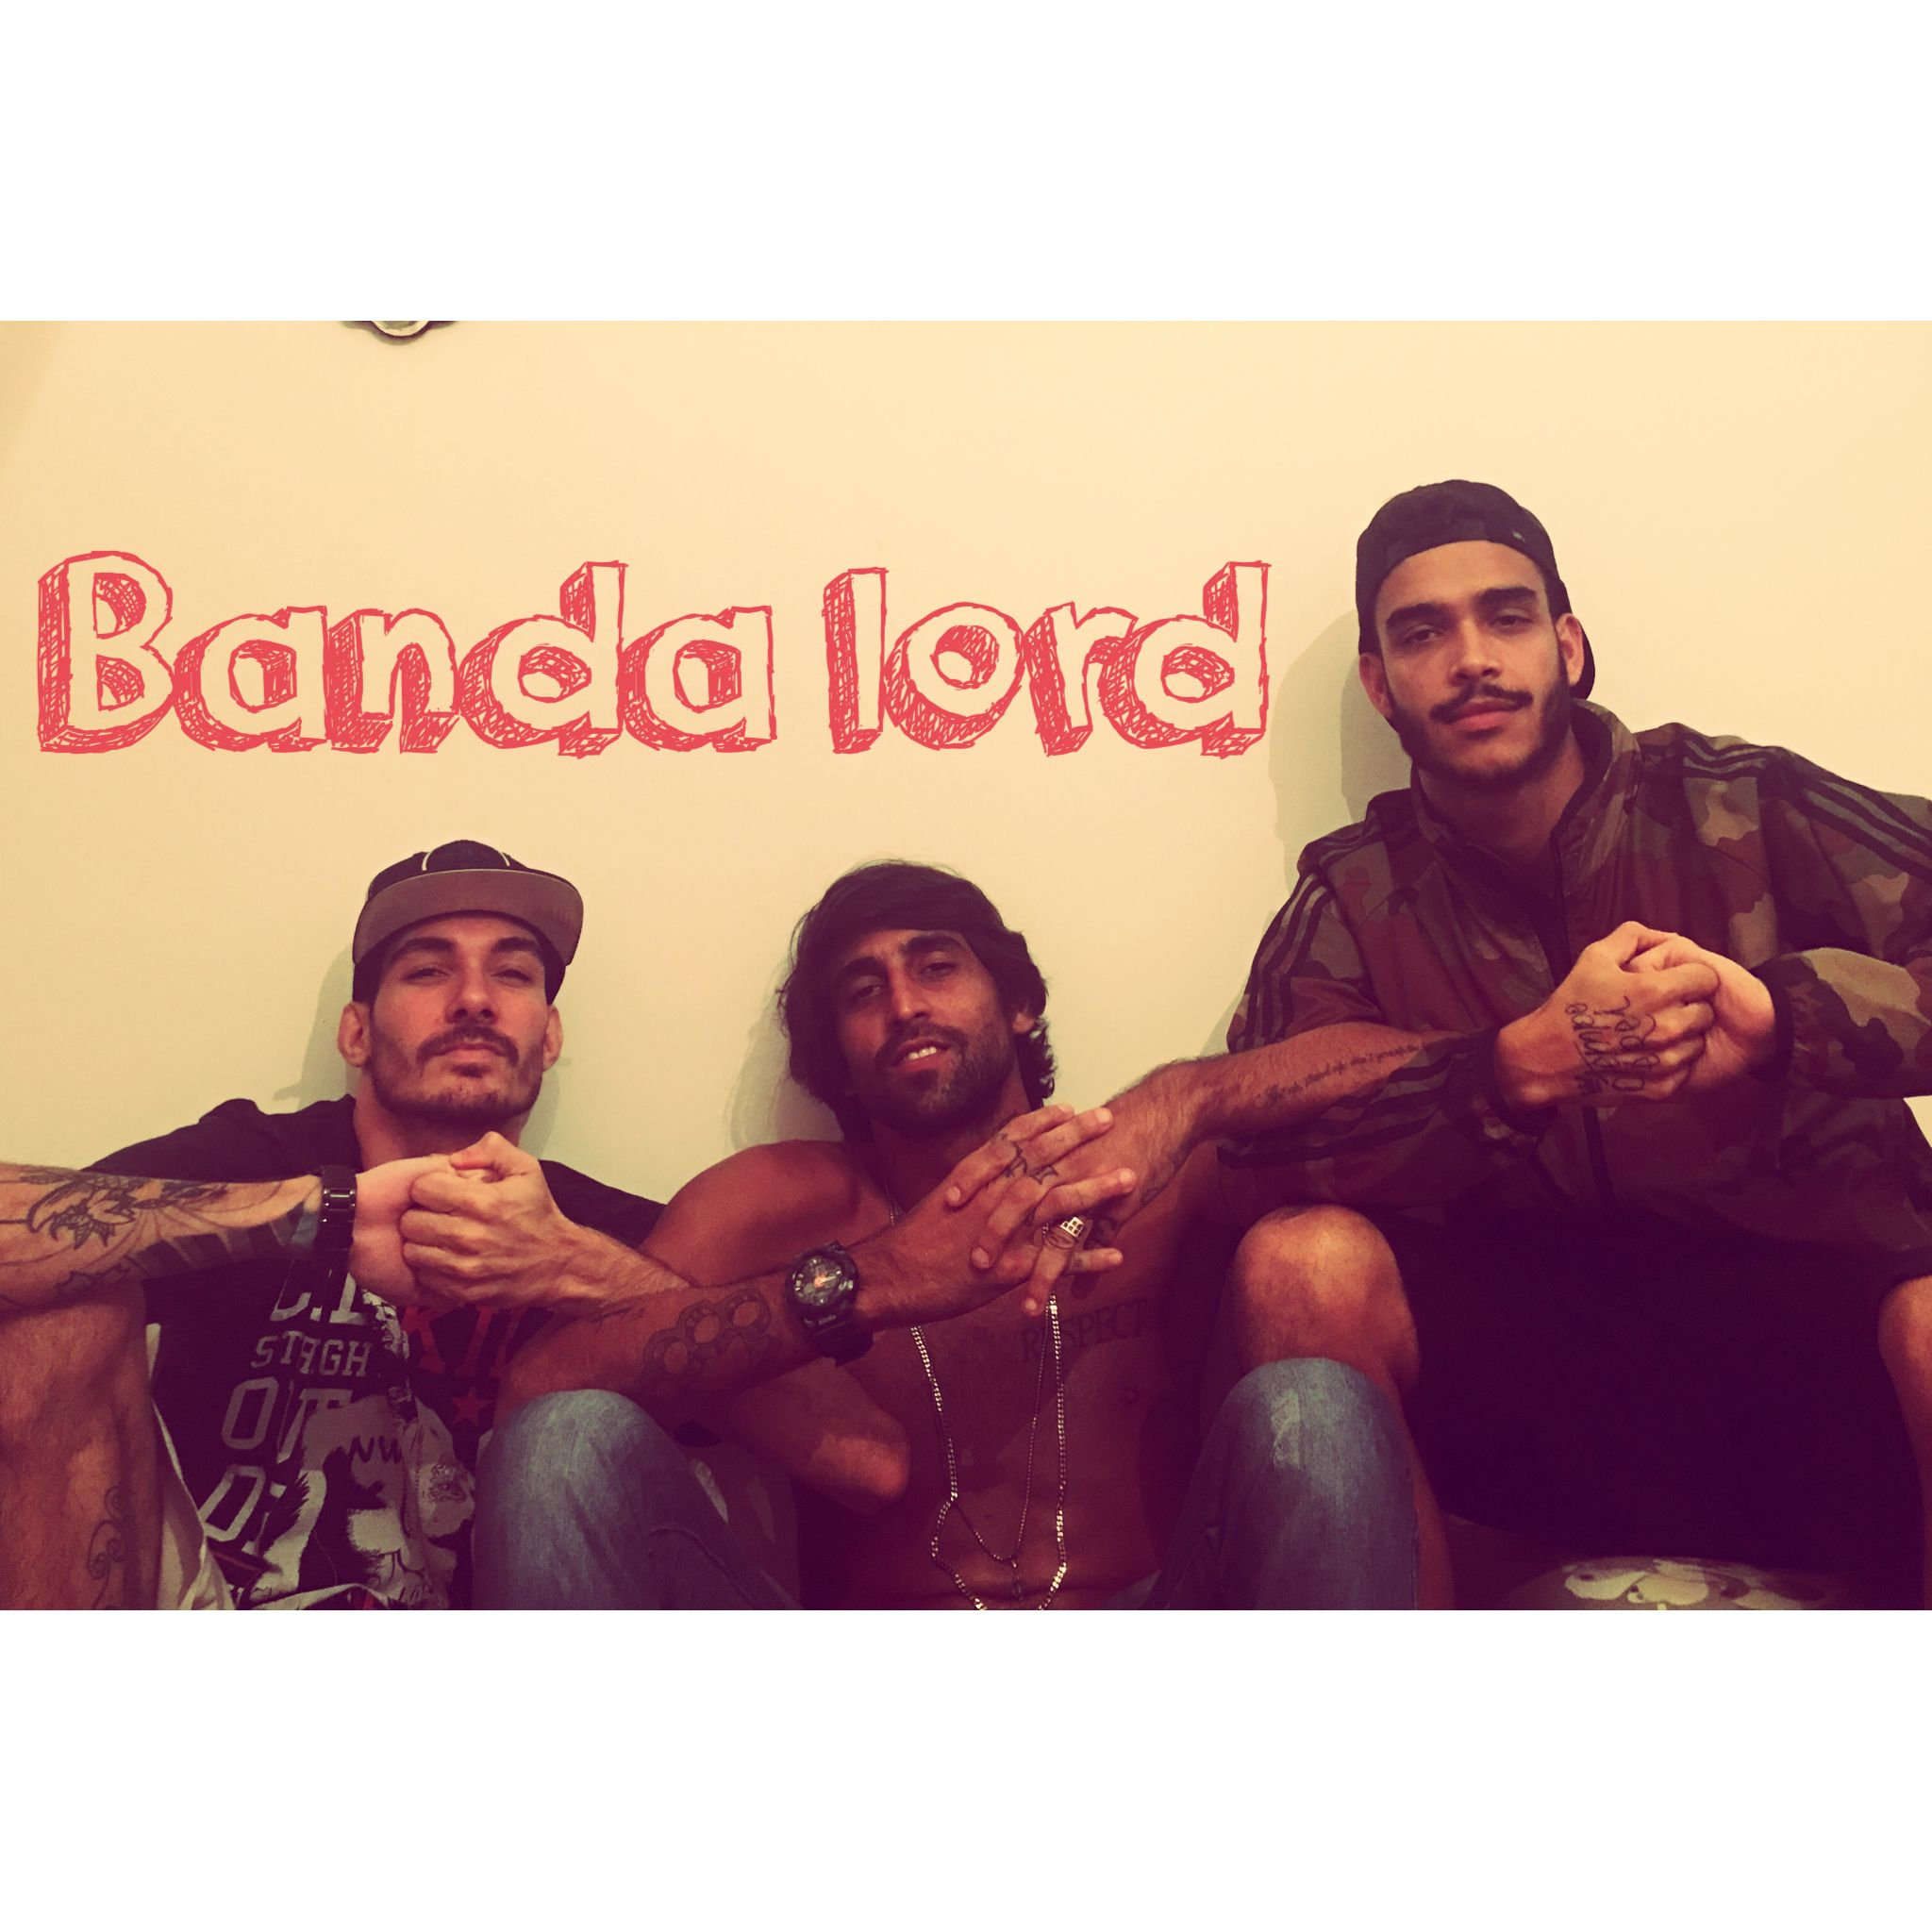 http://youtu.be/tBoCdlazggc  Escutem Relaxa Amor no youtube!   Curtam nosso instagram: @banda_lord